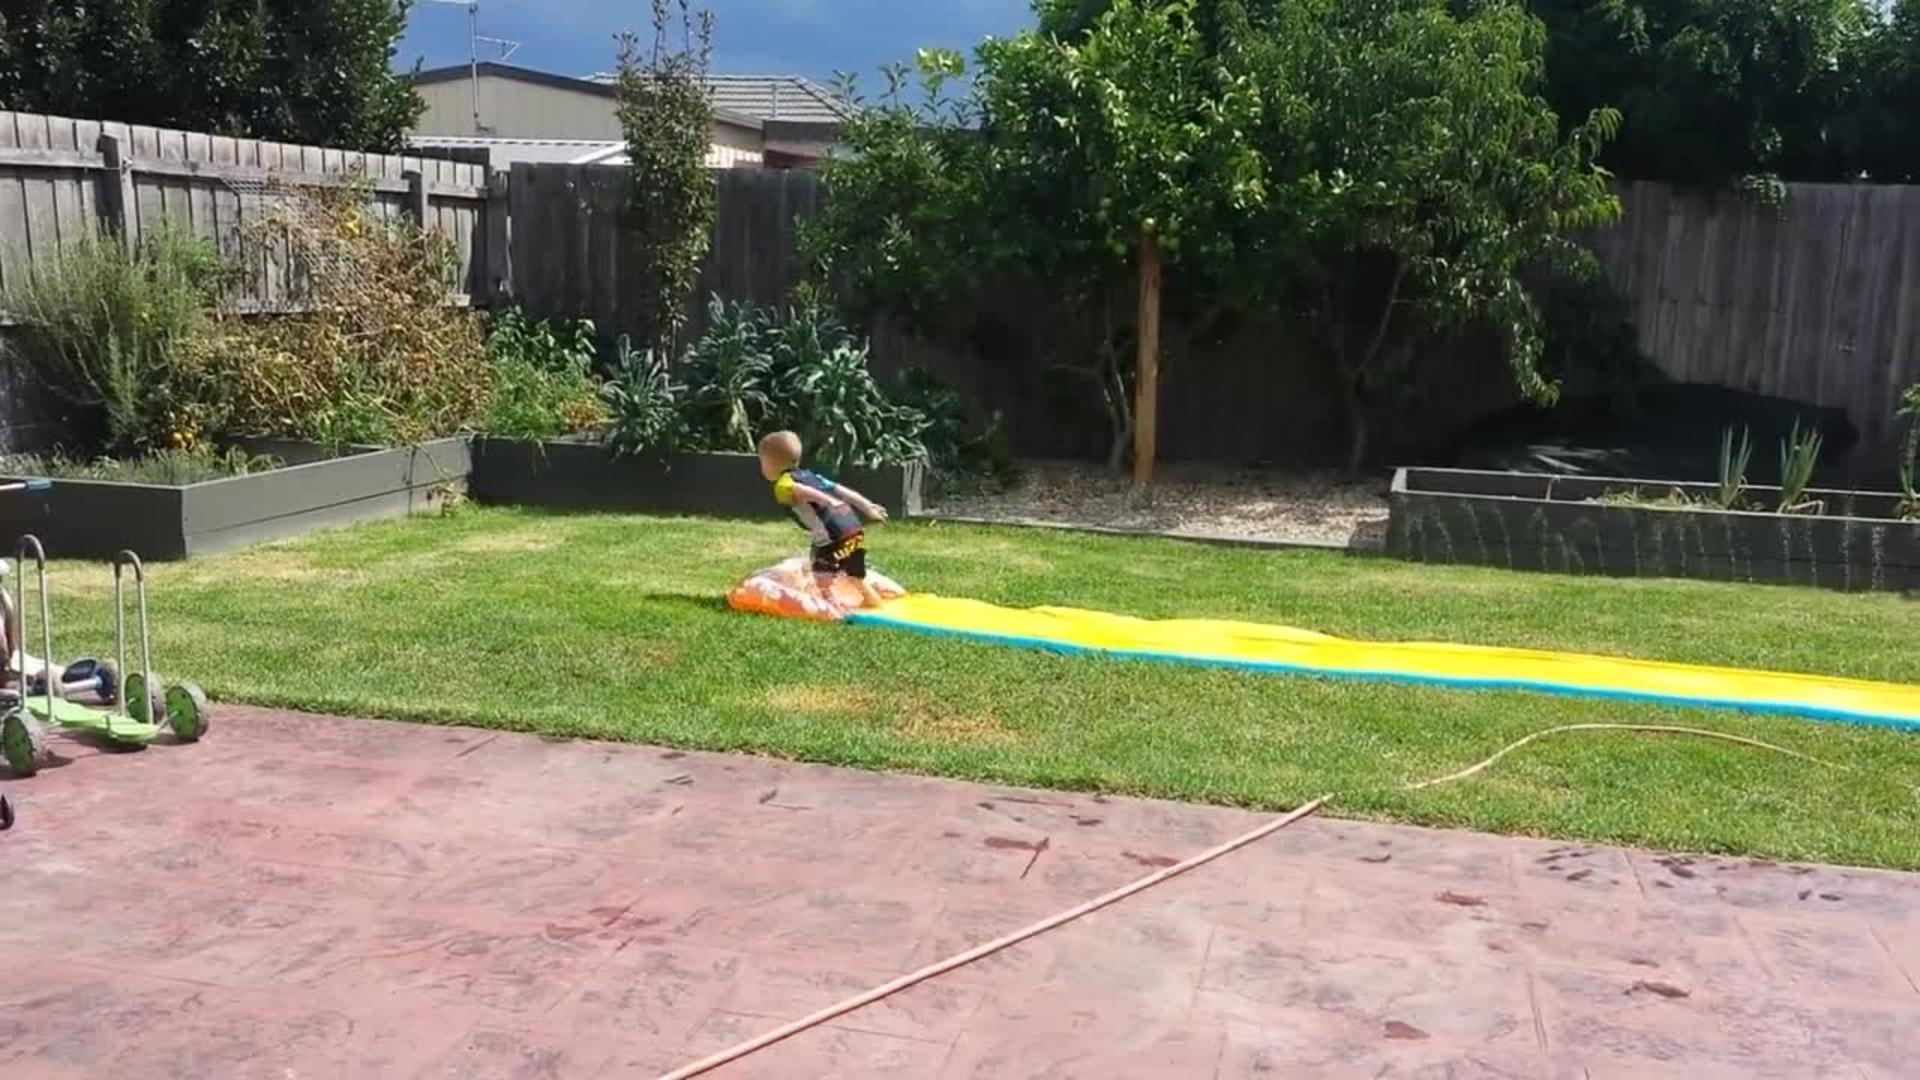 slip u0027n u0027 slider flies off 75 ft jump and overshoots pool jukin